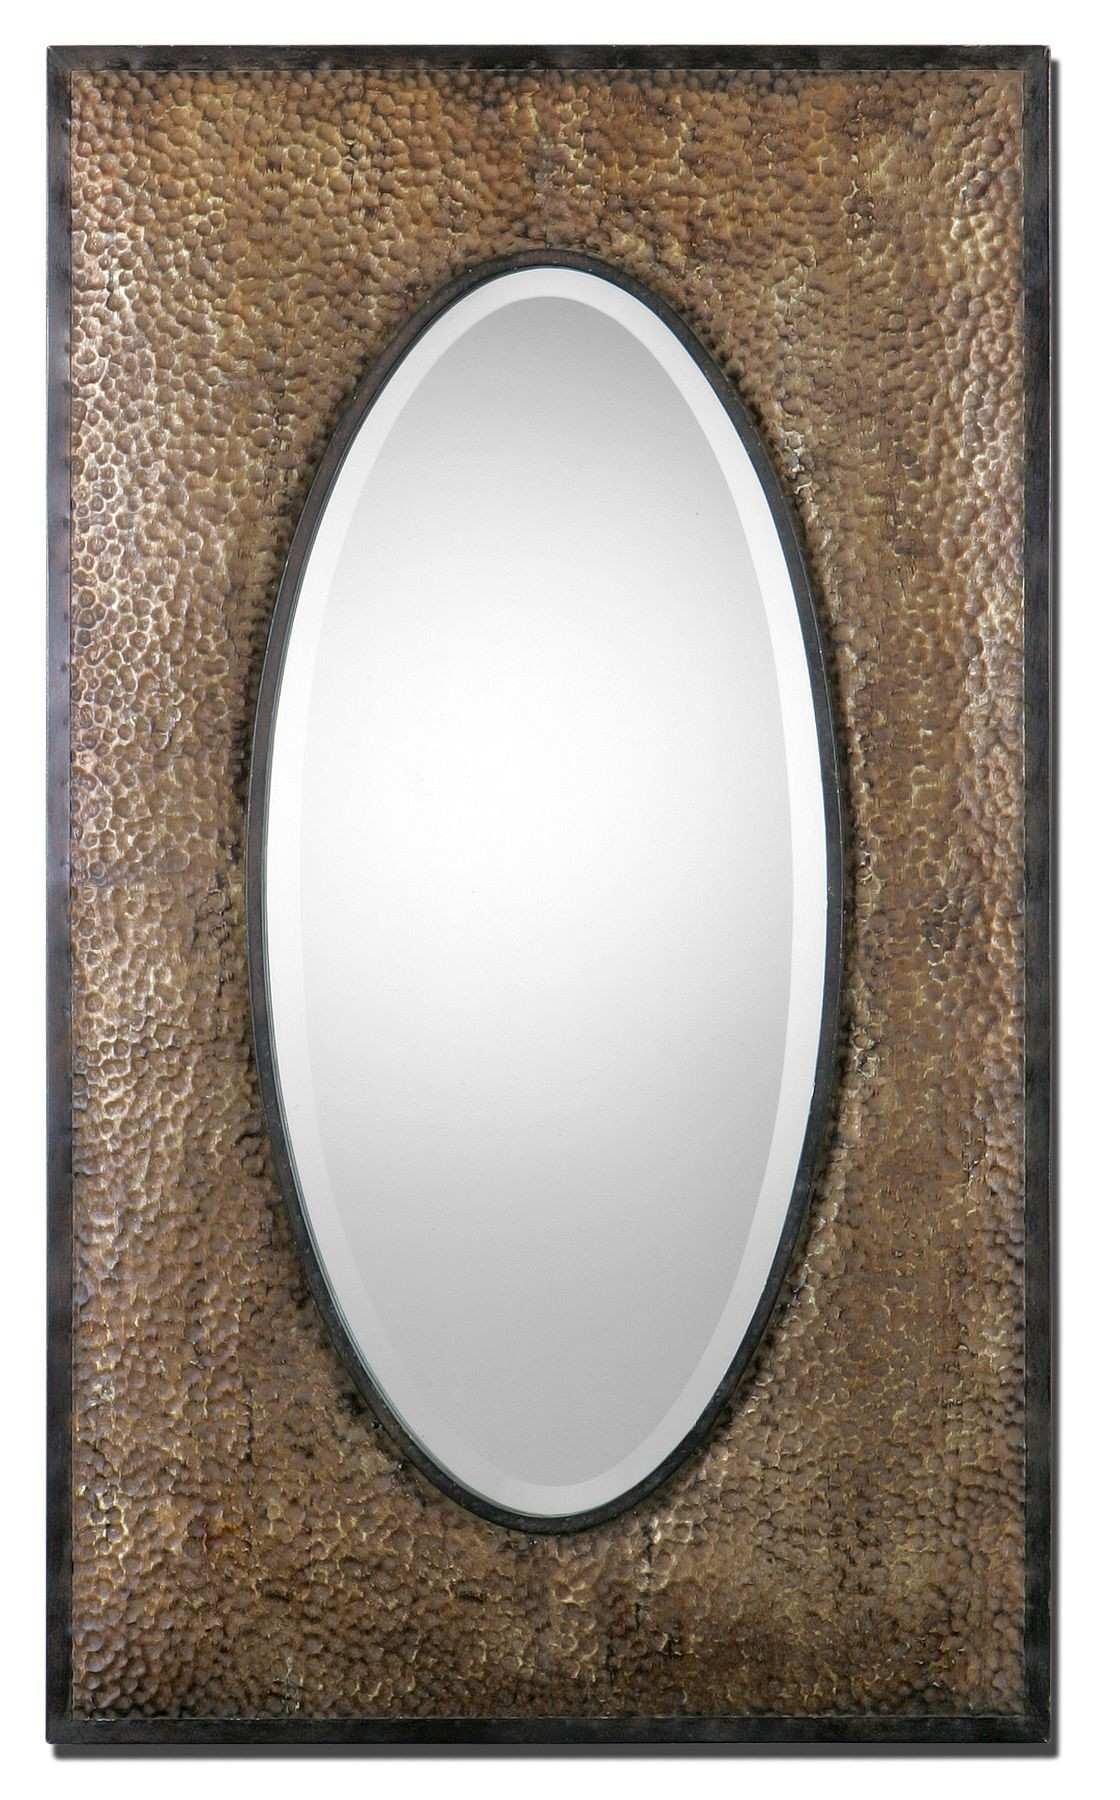 Sangro Hand hammered metal frame finished in rubbed rustic bronze